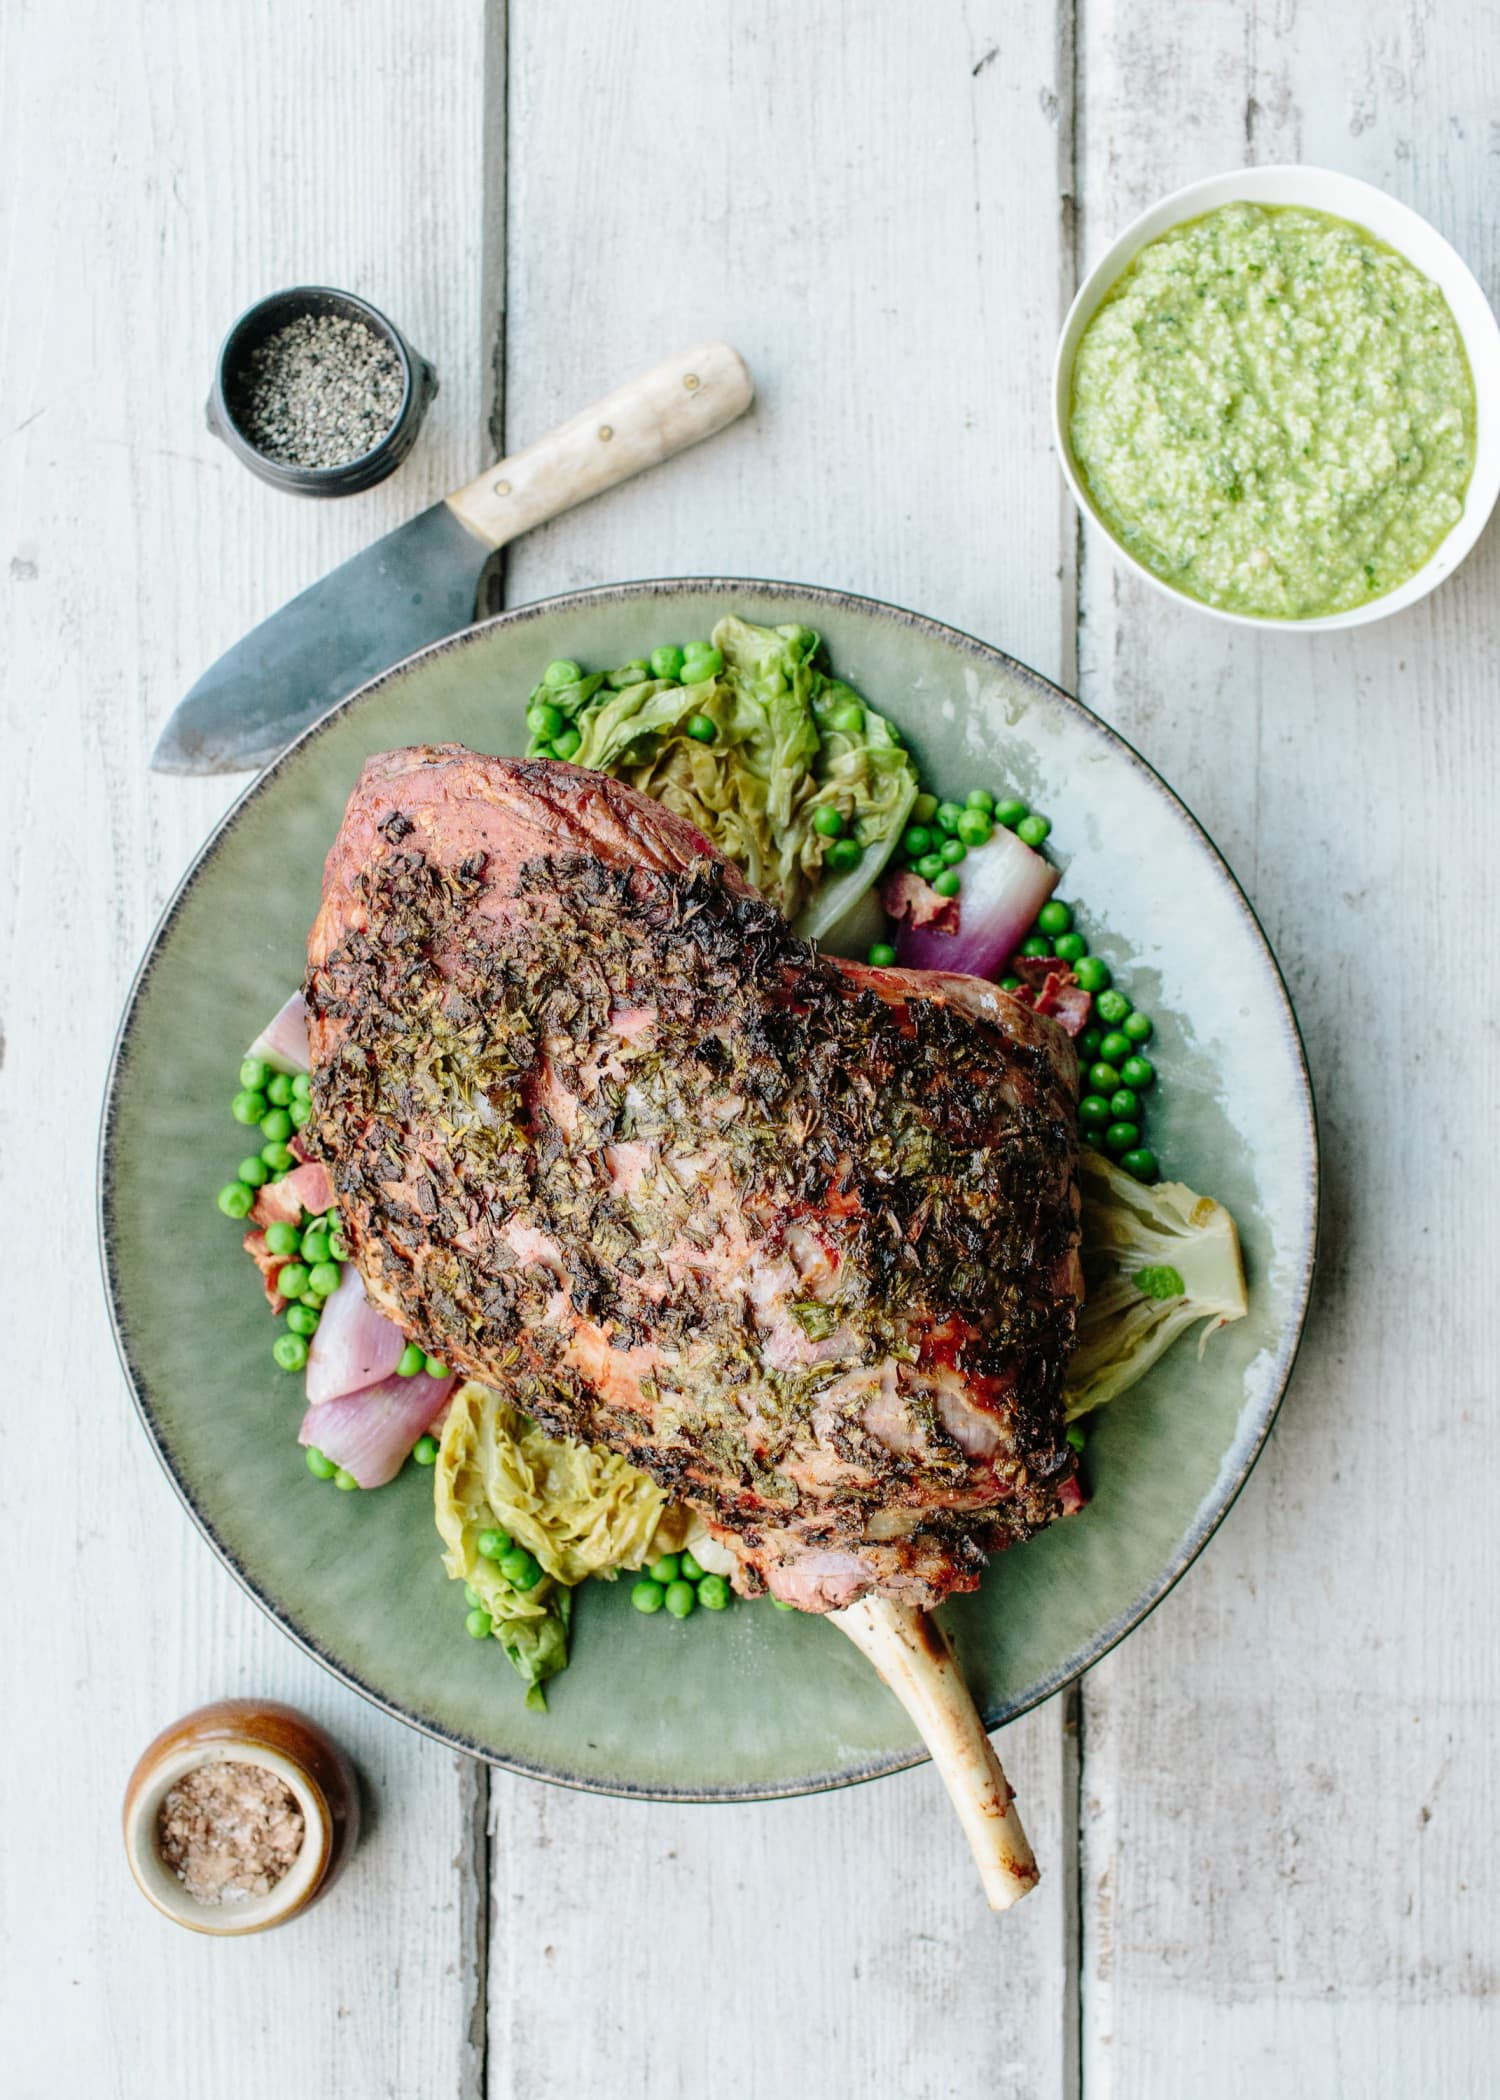 Donal Skehan's Roast Lamb with Green Garlic, Lettuce & Peas Is a Show-Stopping Dish